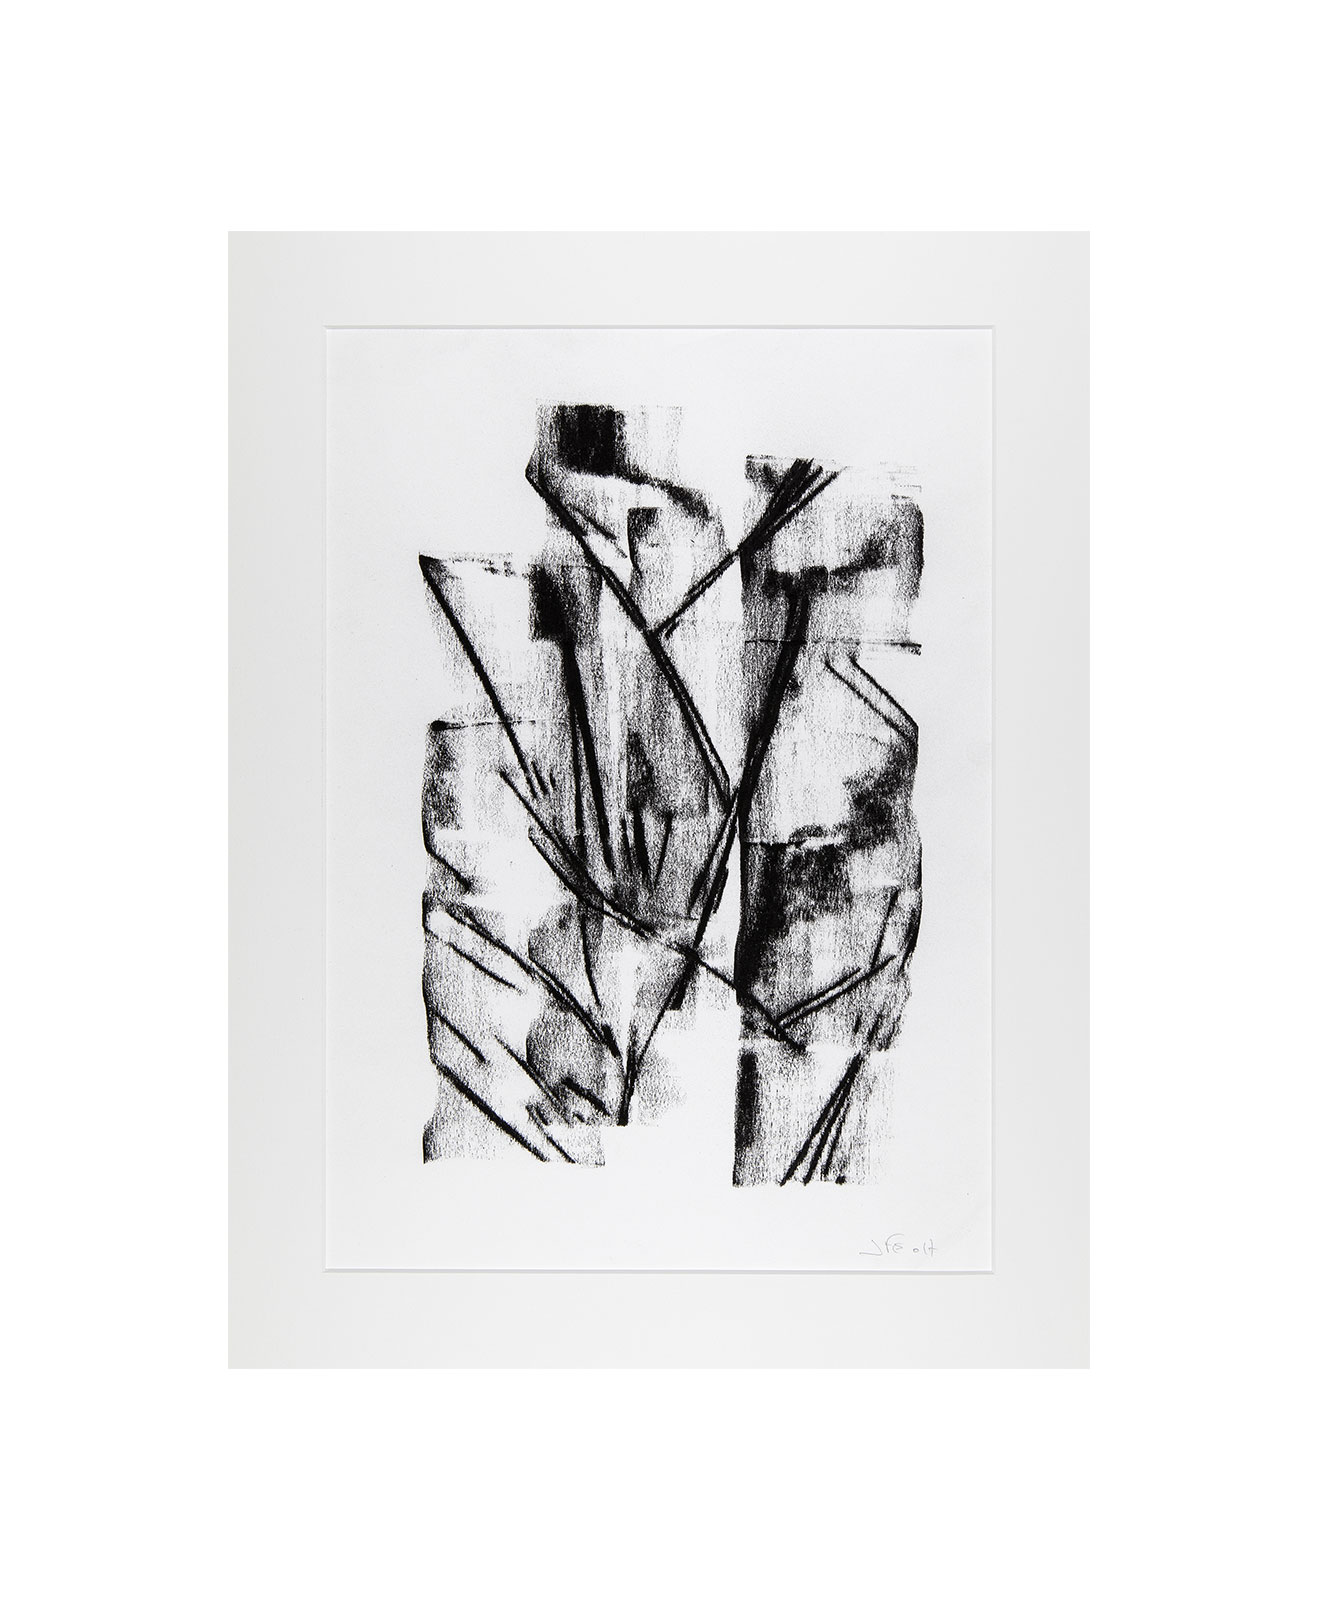 Cha 1.11, Charcoal on paper, black and white artwork, drawing, jf escande, contemporary art